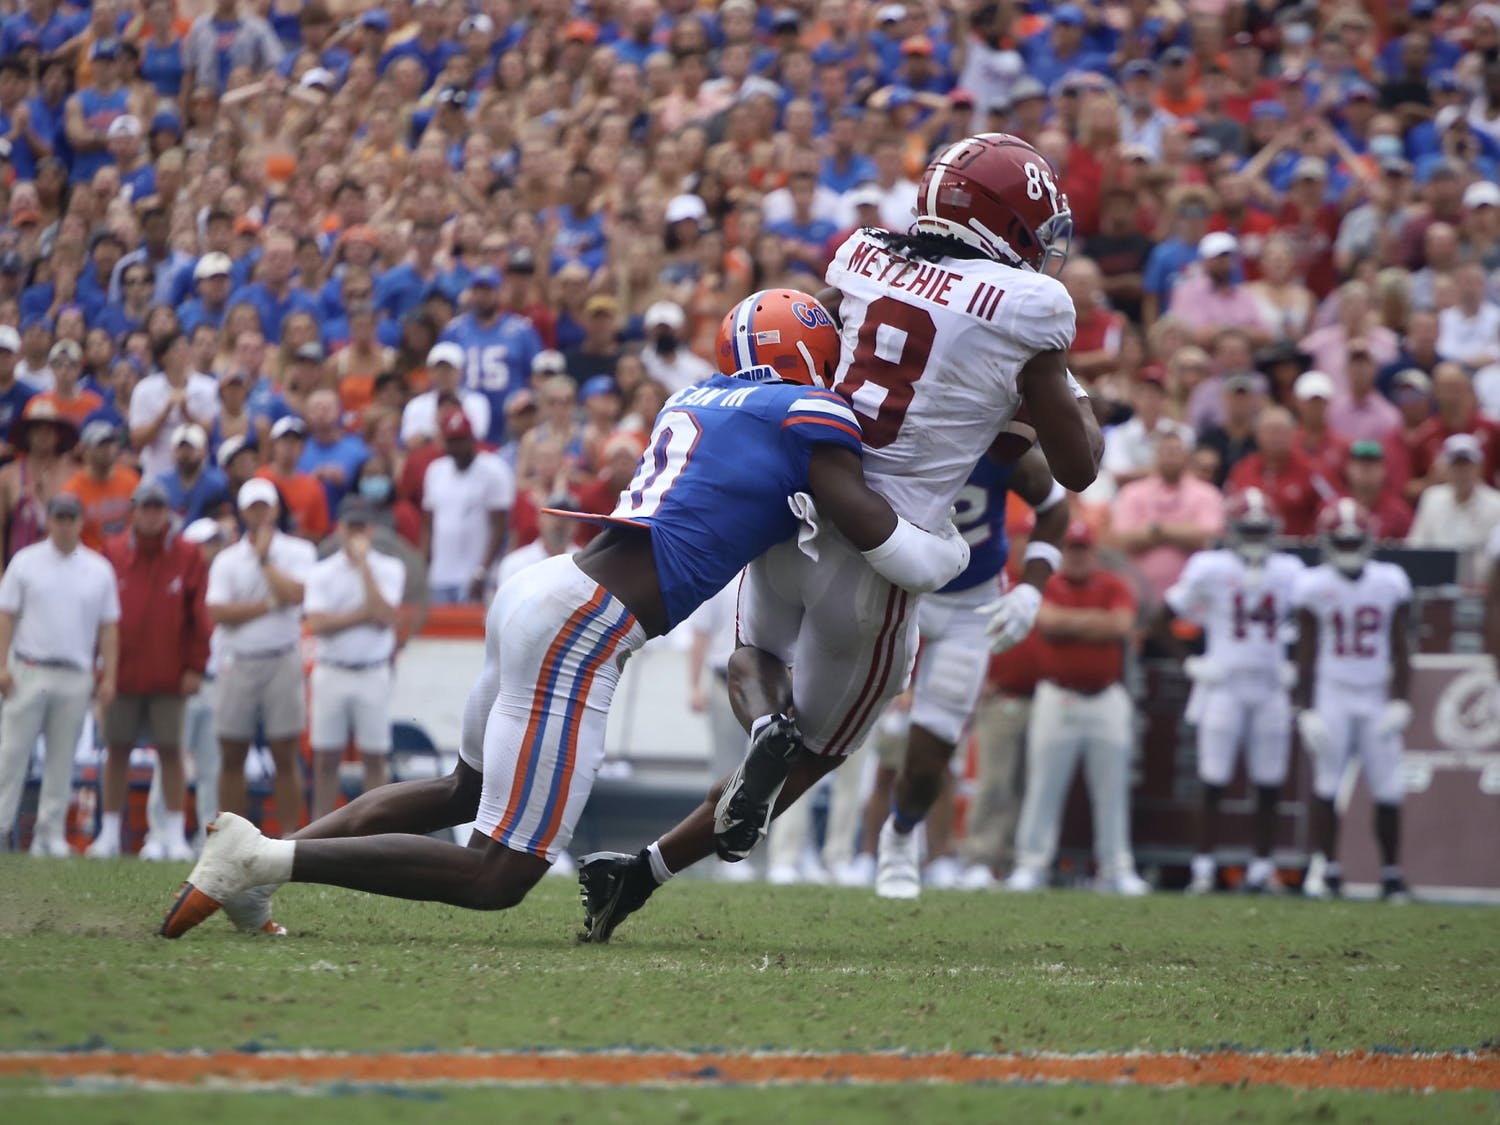 Safety Trey Dean III, pictured in blue, tackles Alabama wide receiver John Metchie III after he makes a catch.